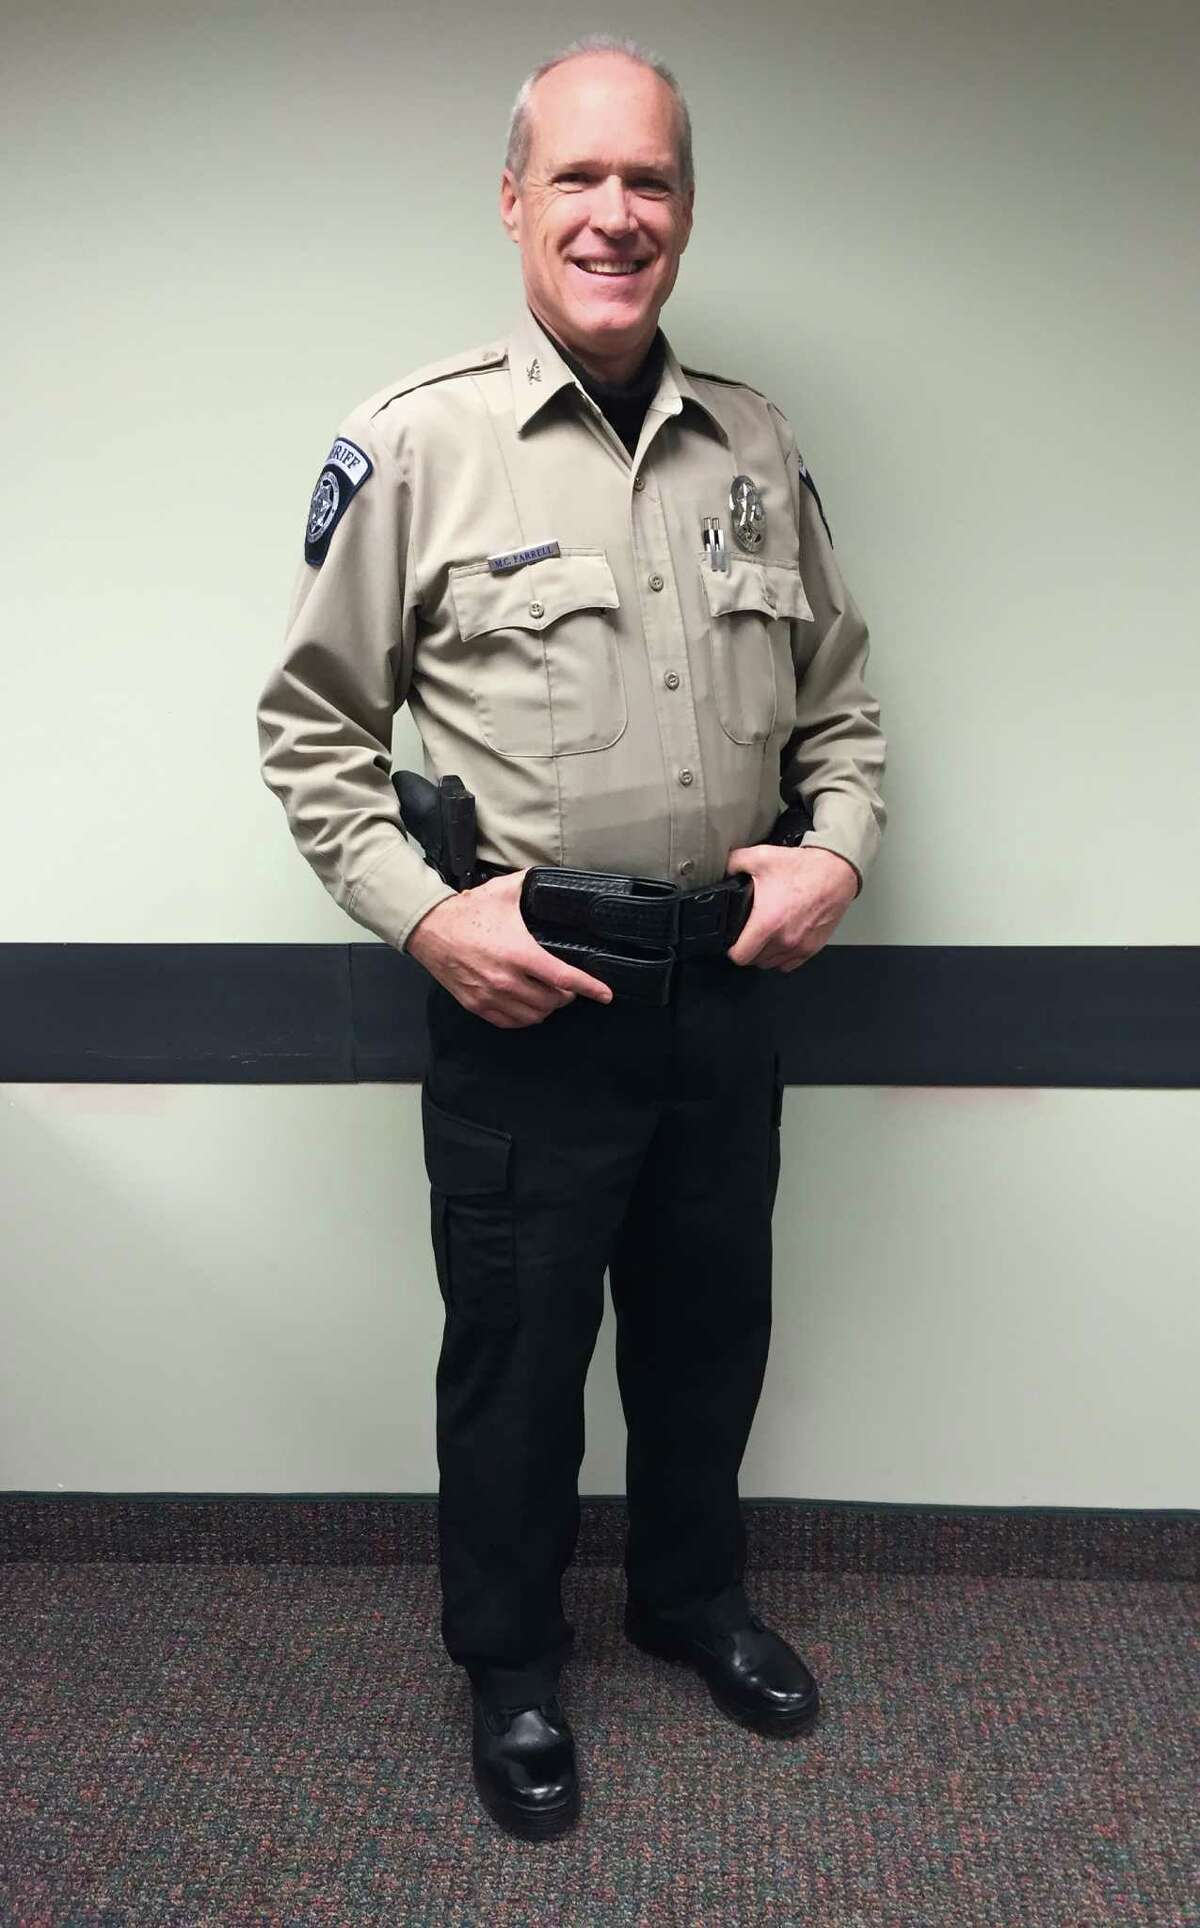 This photo provided by the Sublette County Sheriff's Office shows Undersheriff Mark Farrell wearing a new uniform at the Sheriff's Office on Monday, Feb. 2, 2015, in Pinedale, Wyo. The new sheriff of a Wyoming county has banned his deputies from wearing cowboy hats and cowboy boots, a change that led one longtime deputy to retire rather than give up his Western attire. Sublette County Sheriff Stephen Haskell imposed the new dress code in the western Wyoming county that includes Pinedale, which True West magazine recently named a true Western town.